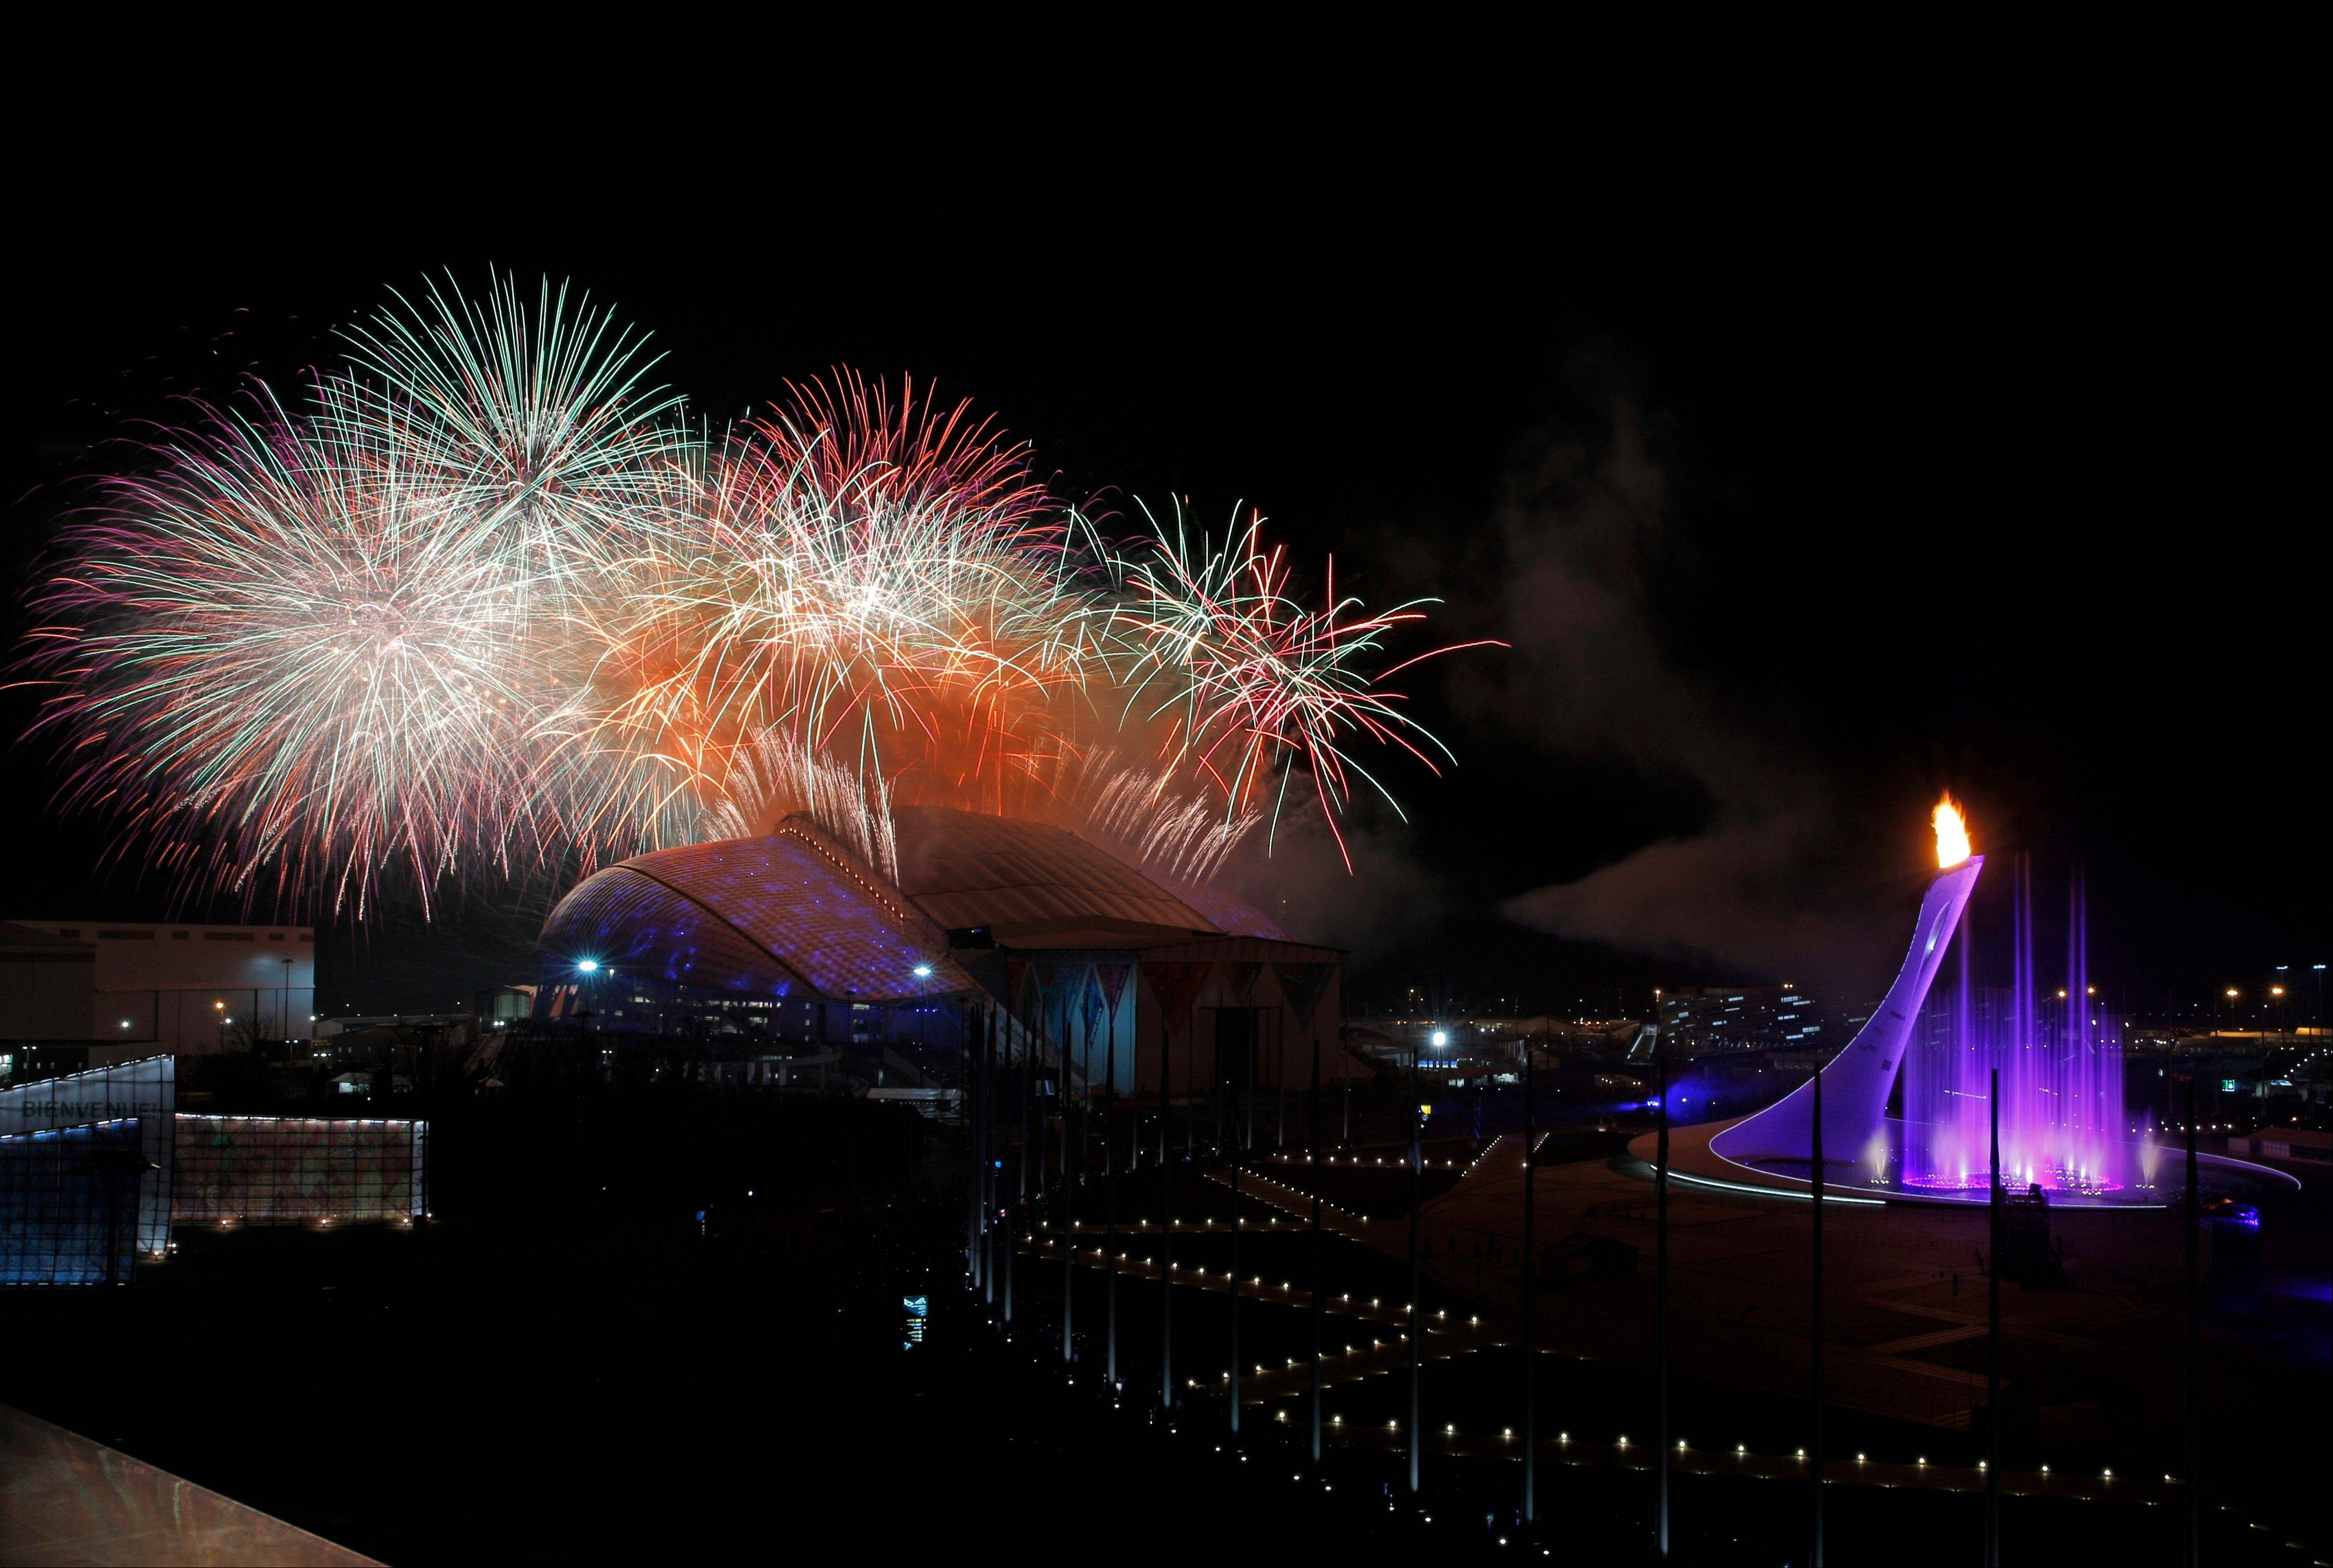 Fireworks are seen over the Olympic Park during the opening ceremony.